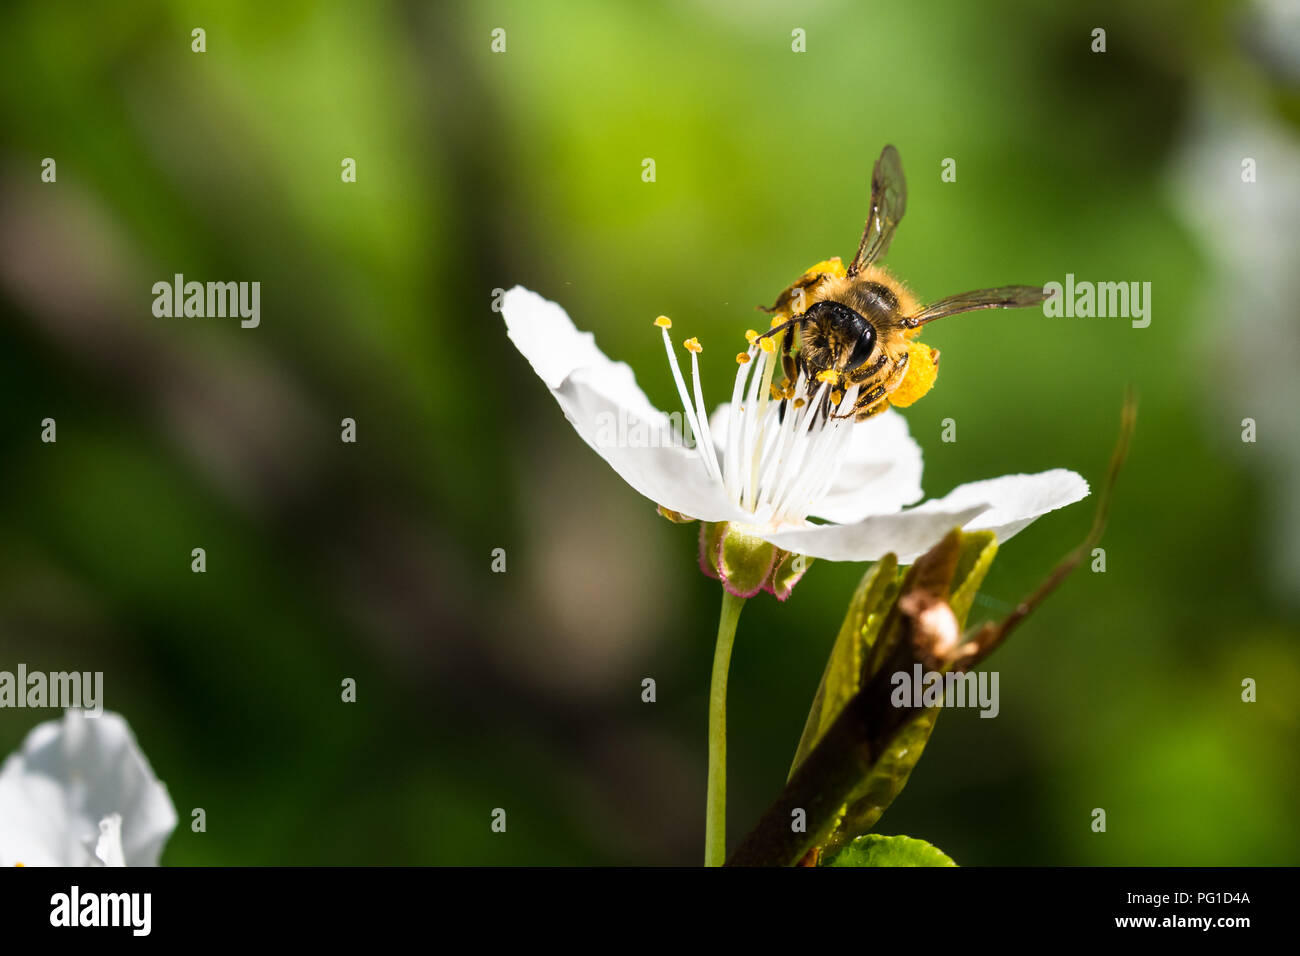 A hard working European honey bee pollinating a flowers in a spring. You can see big pollen baskets on legs (corbicula). Beautiful macro shot with sha - Stock Image